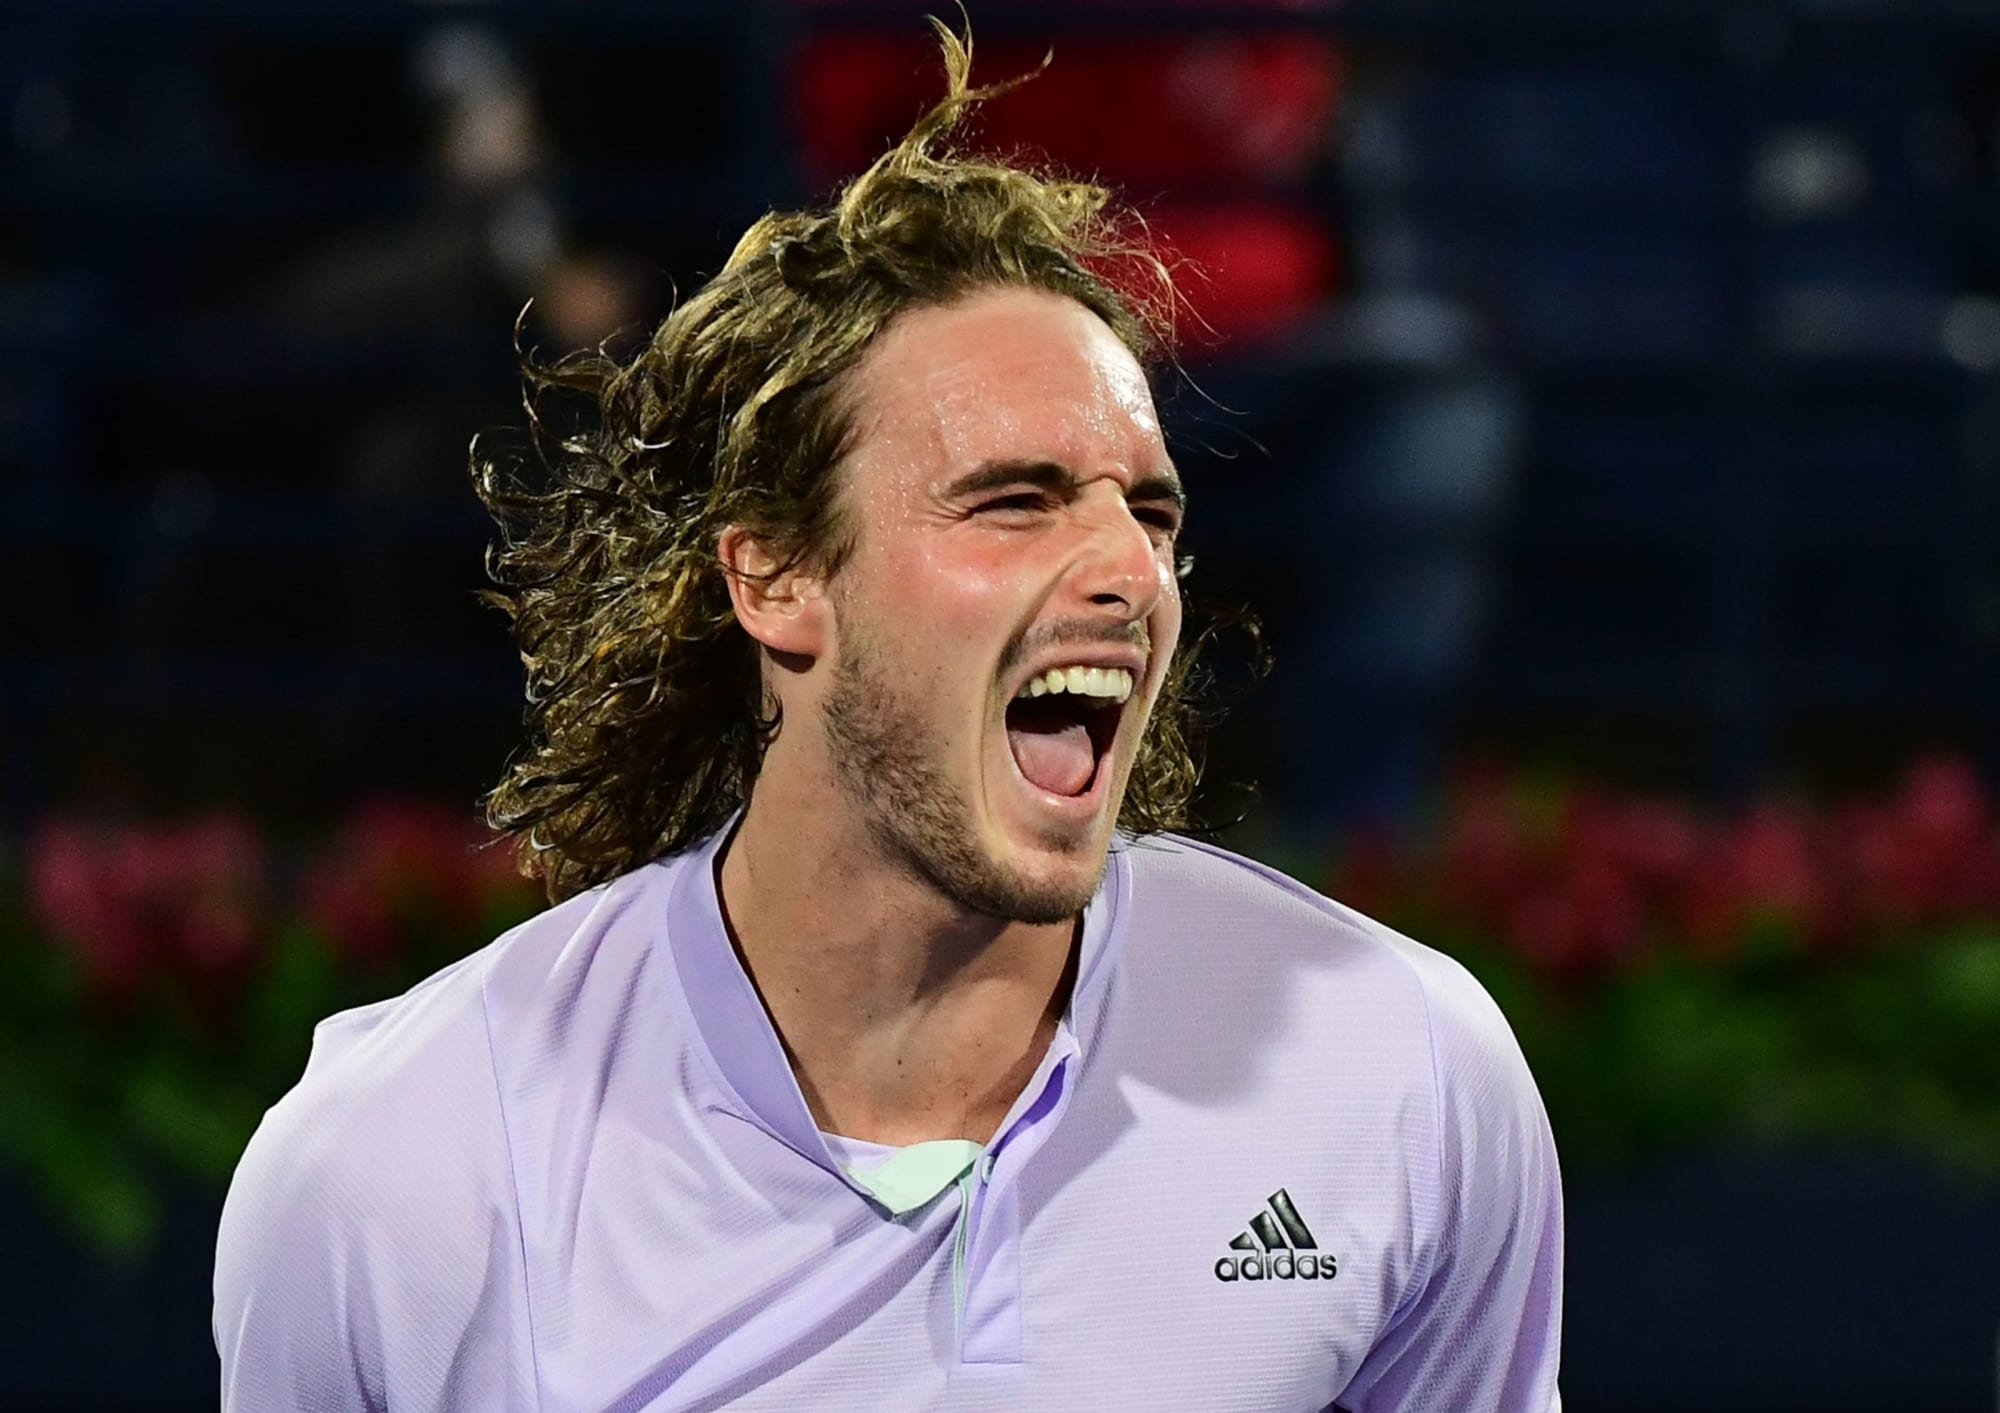 UTS Day 9/Semifinals Preview: Can anyone catch Tsitsipas?